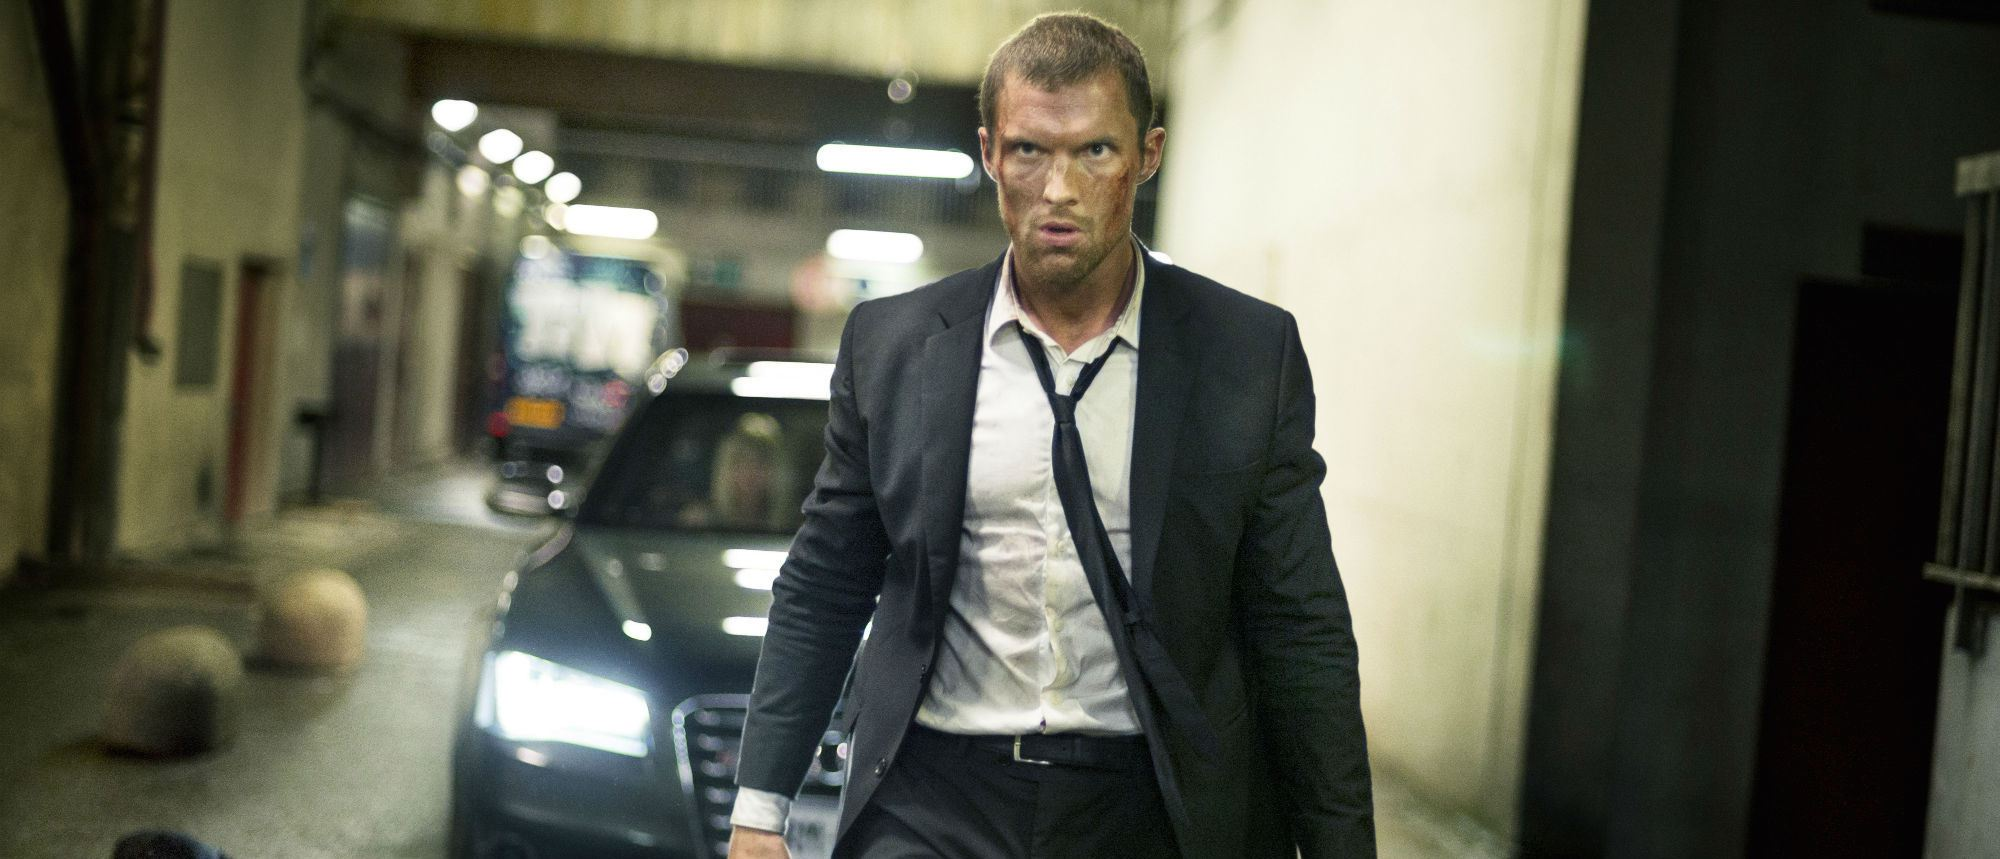 Watch The Transporter Refueled Movie Trailer